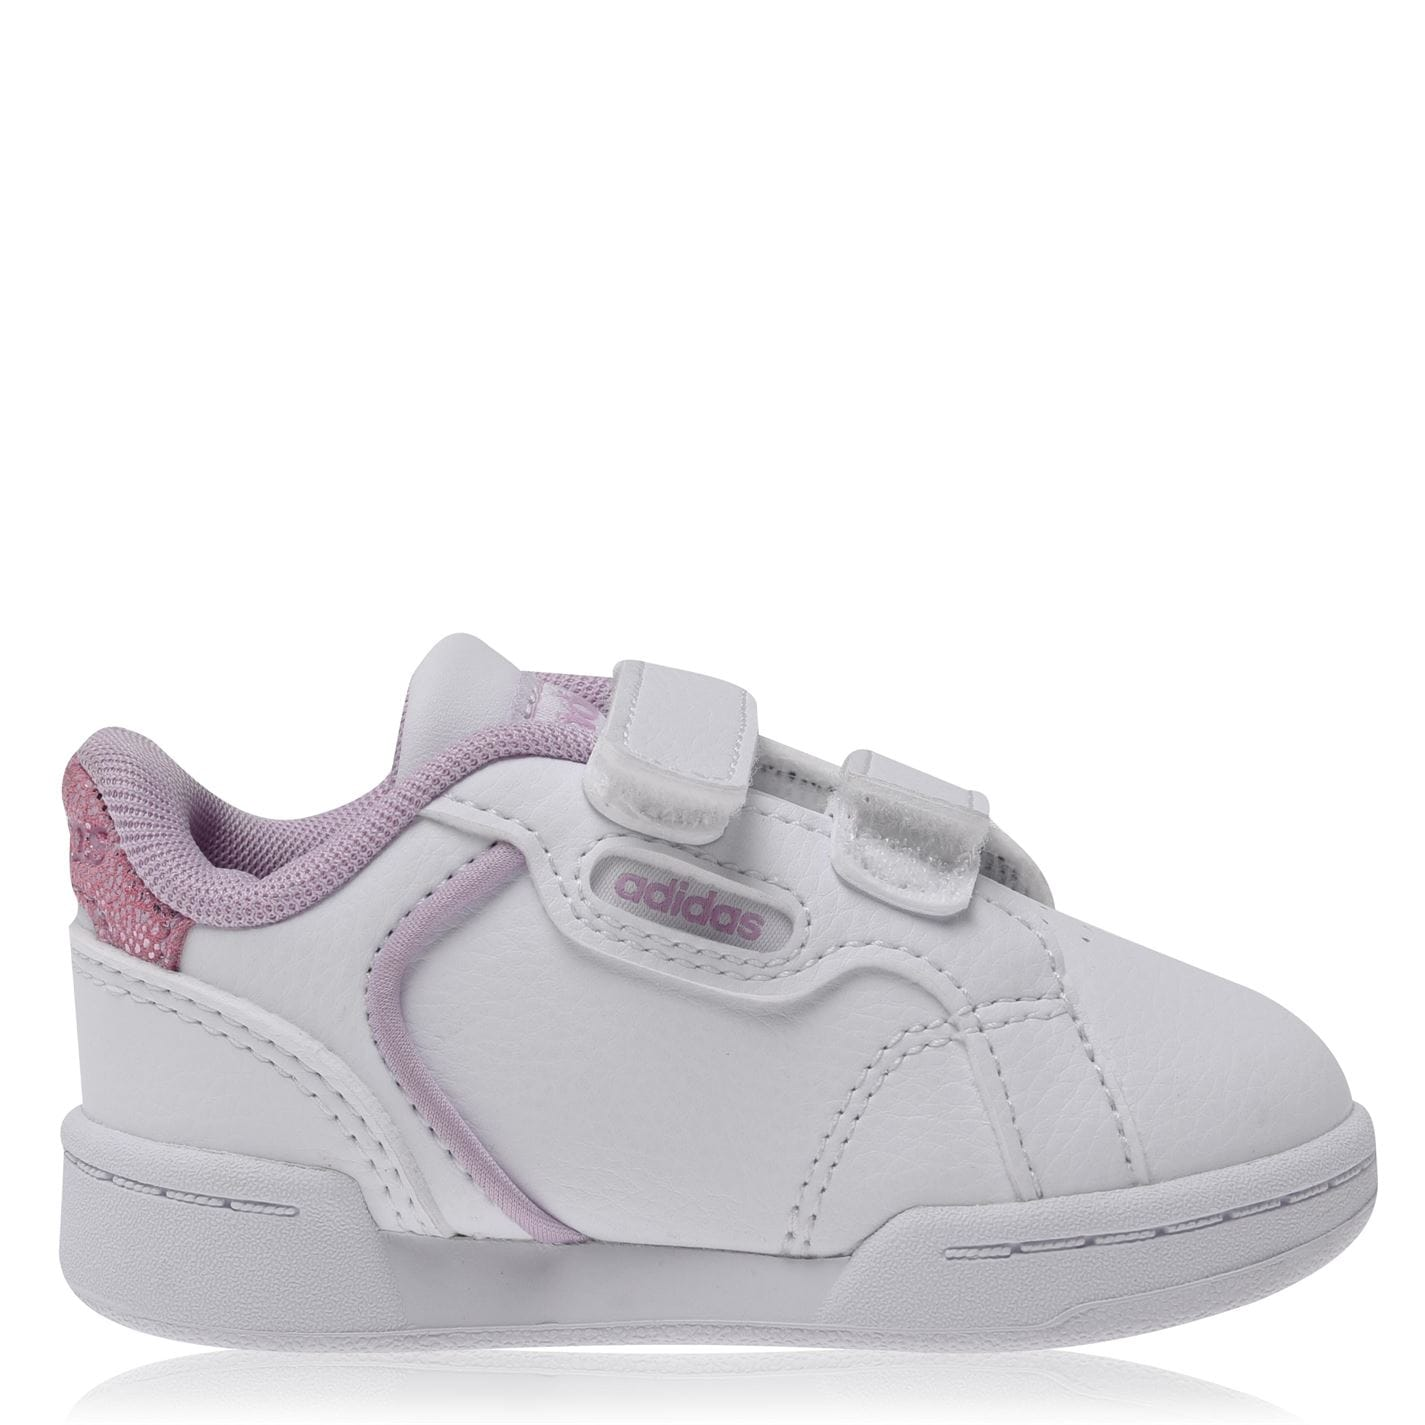 adidas Roguera Court Trainers Infant Girls White/Wht/Lilac